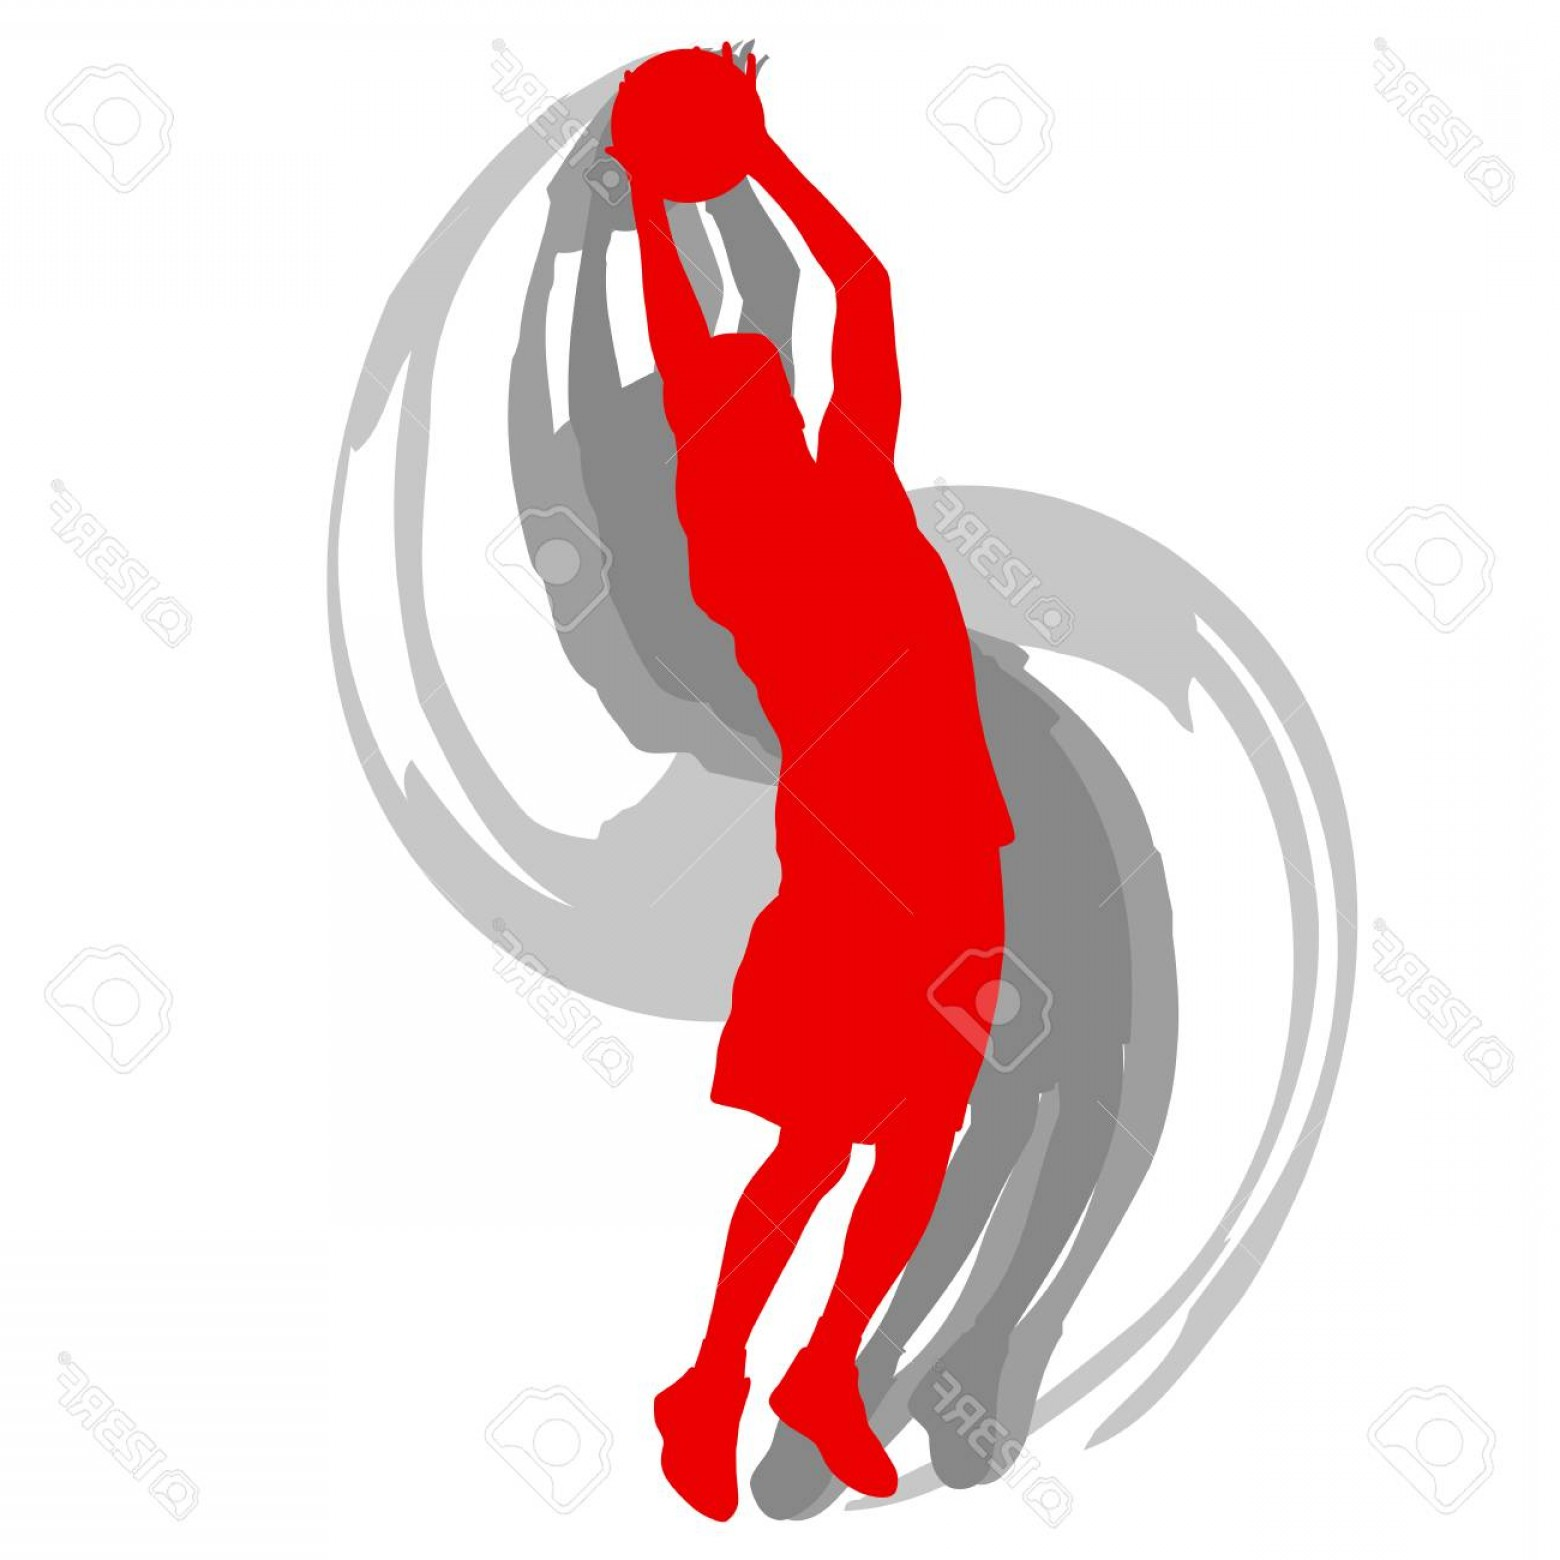 Motion Basketball Vector: Photostock Vector Basketball Player In Action Vector Background Concept Motion